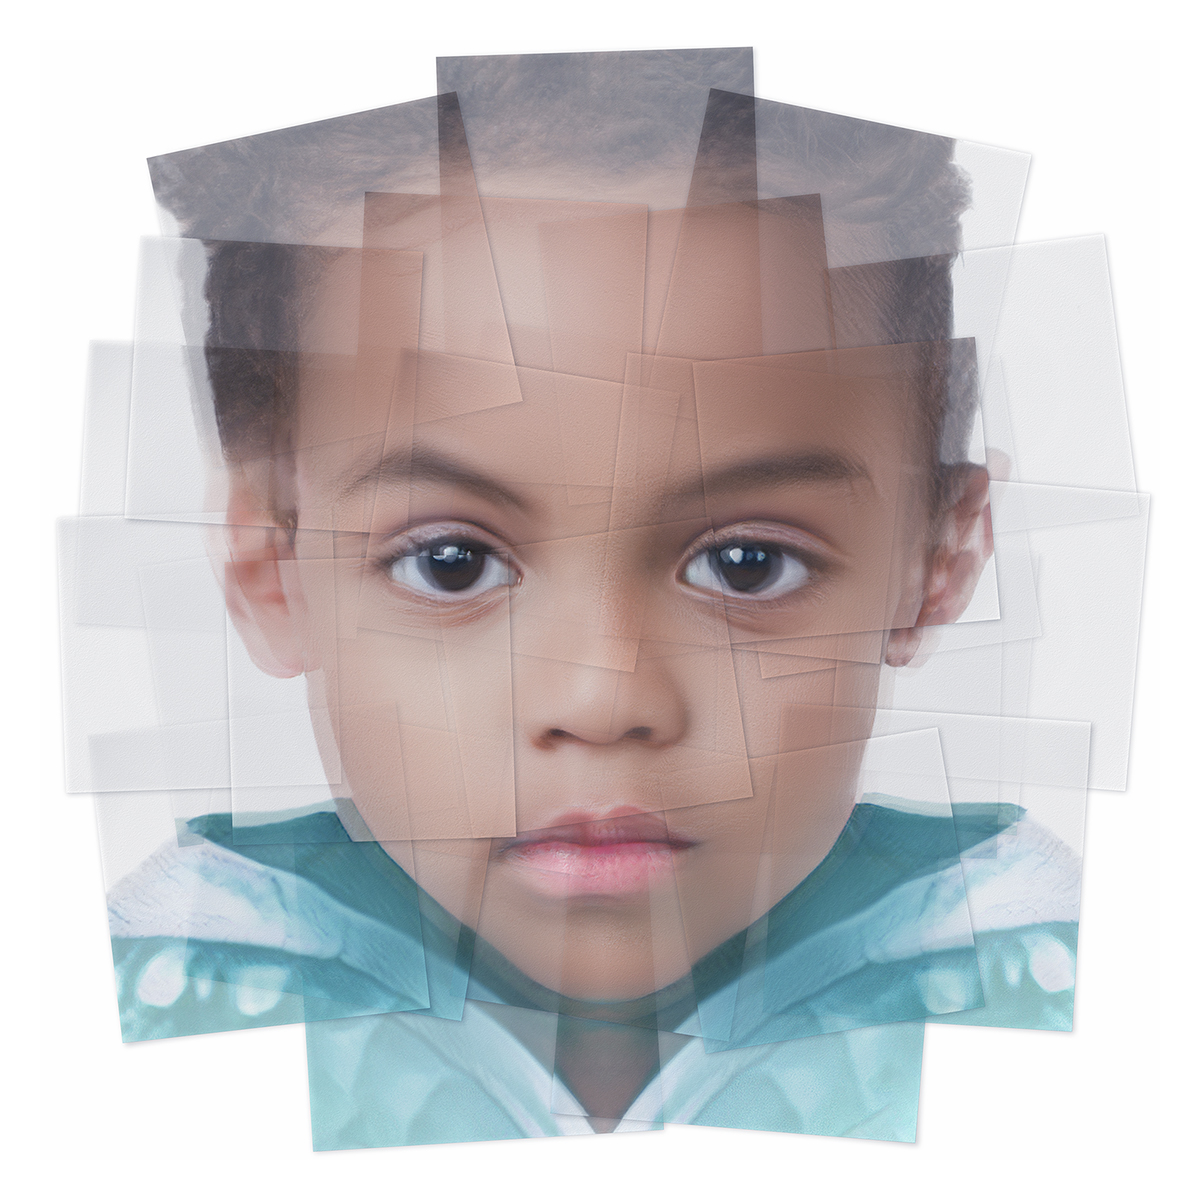 Generated Faces by Artificial Intelligence Kids 005 1 - 2019 - Generated Faces by Artificial Intelligence. Kids. V1